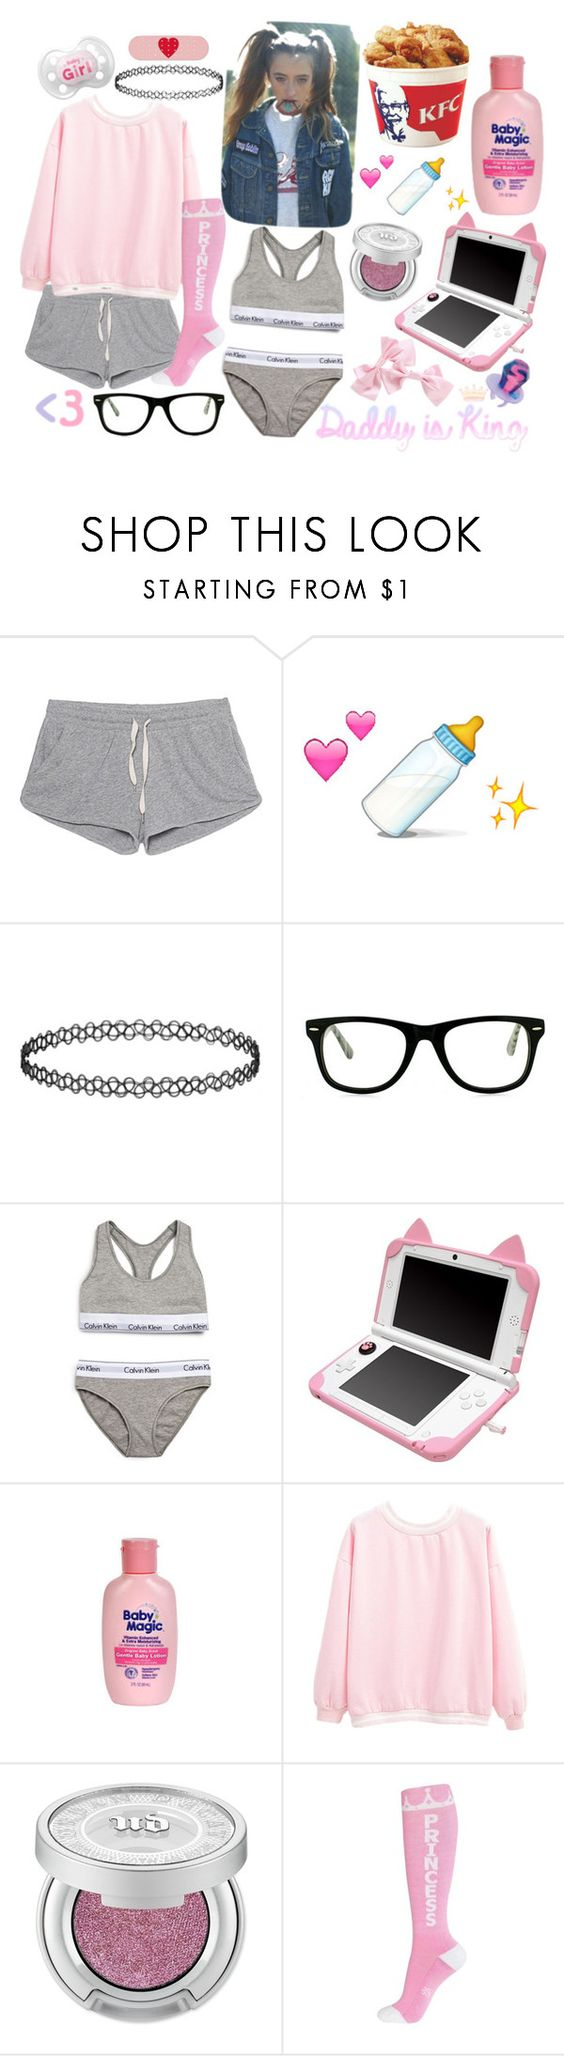 """""""Ddlg"""" by princess-llyssa ❤ liked on Polyvore featuring American Vintage, Topshop, Muse, Calvin Klein Underwear and Urban Decay"""